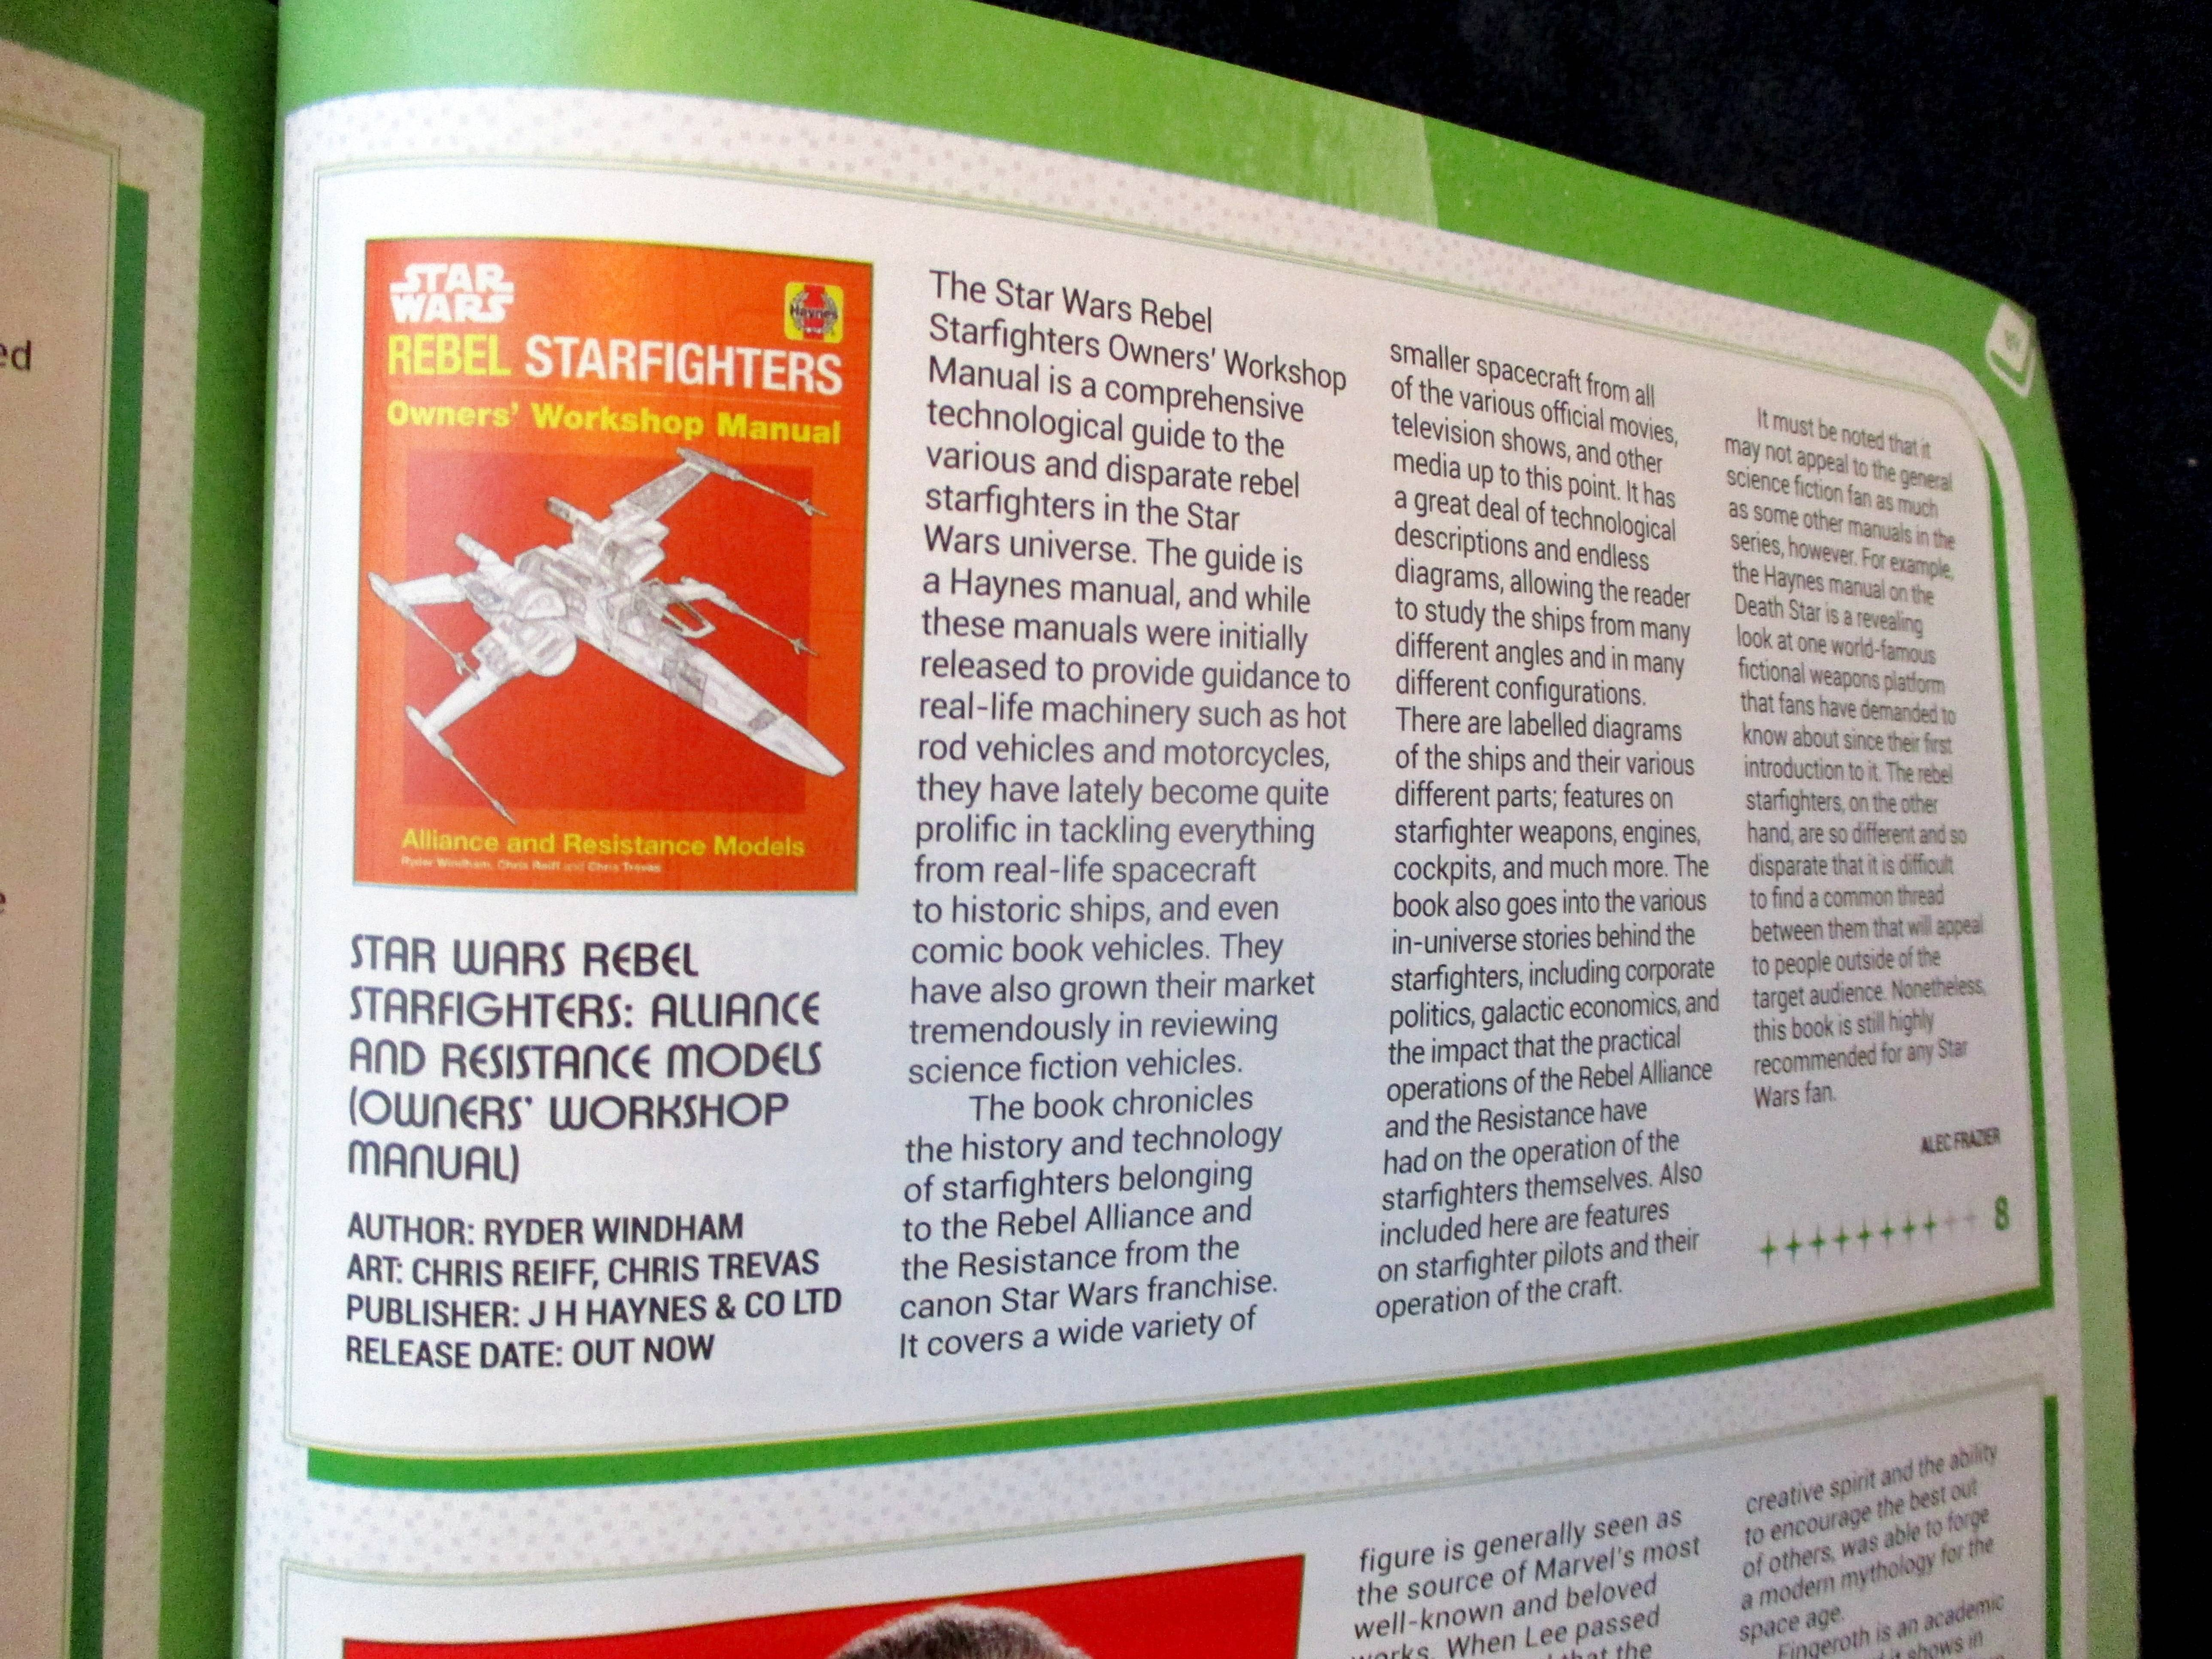 My Review of Star Wars Rebel Starfighters: Alliance and Resistance Models (Owners? Workshop Manual) in Starburst Magazine #468: 2020 Preview Issue Collectors? Edition